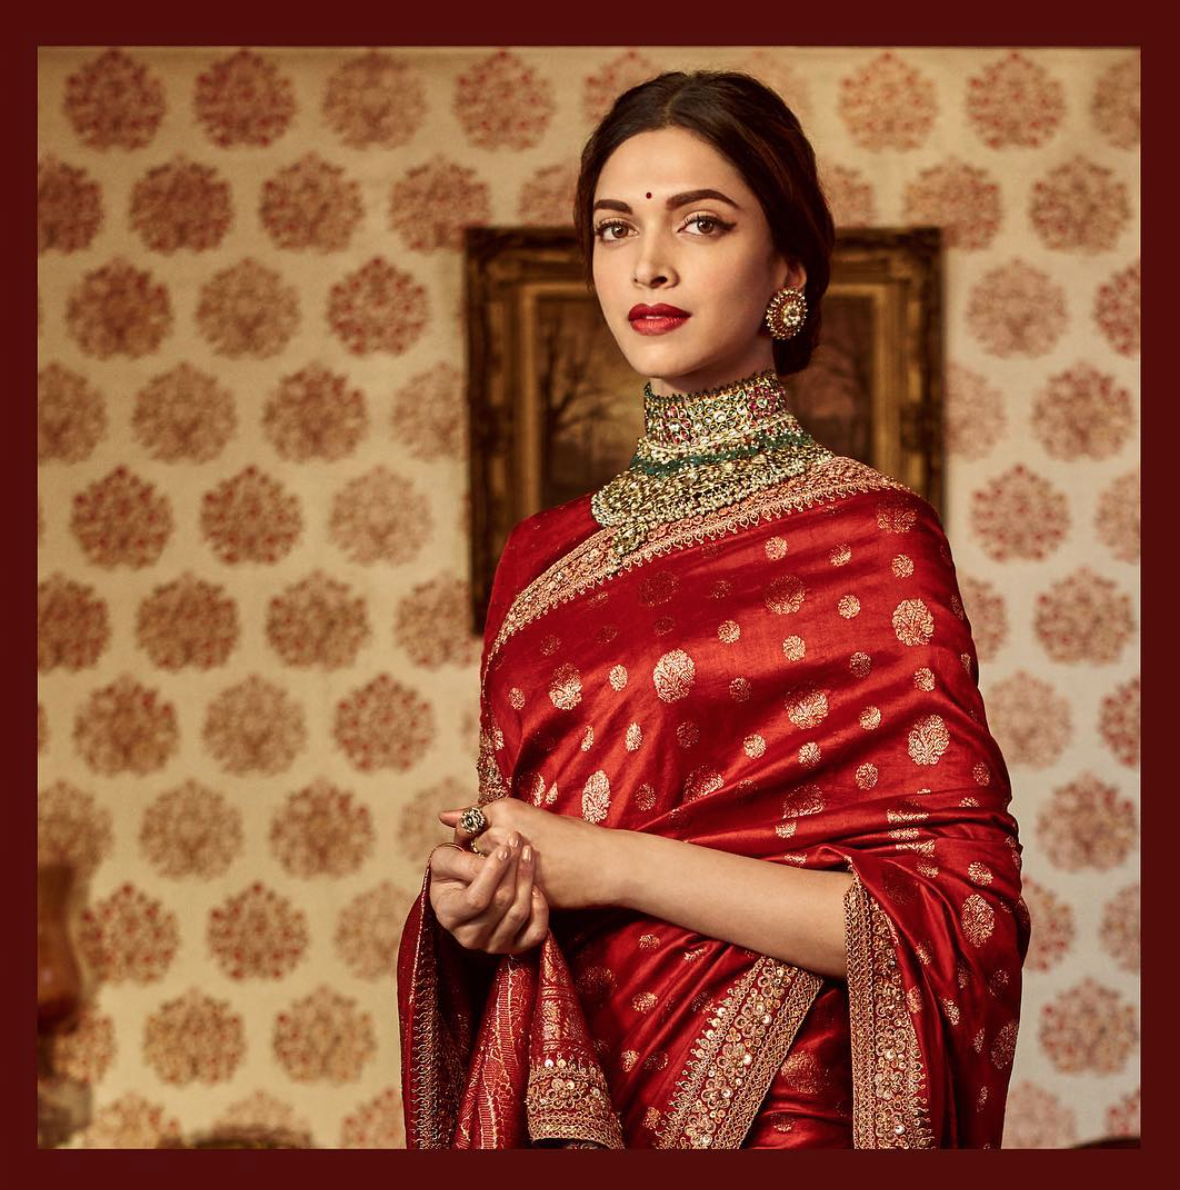 Deepika Padkone wearas 'The Sabyasachi Red'